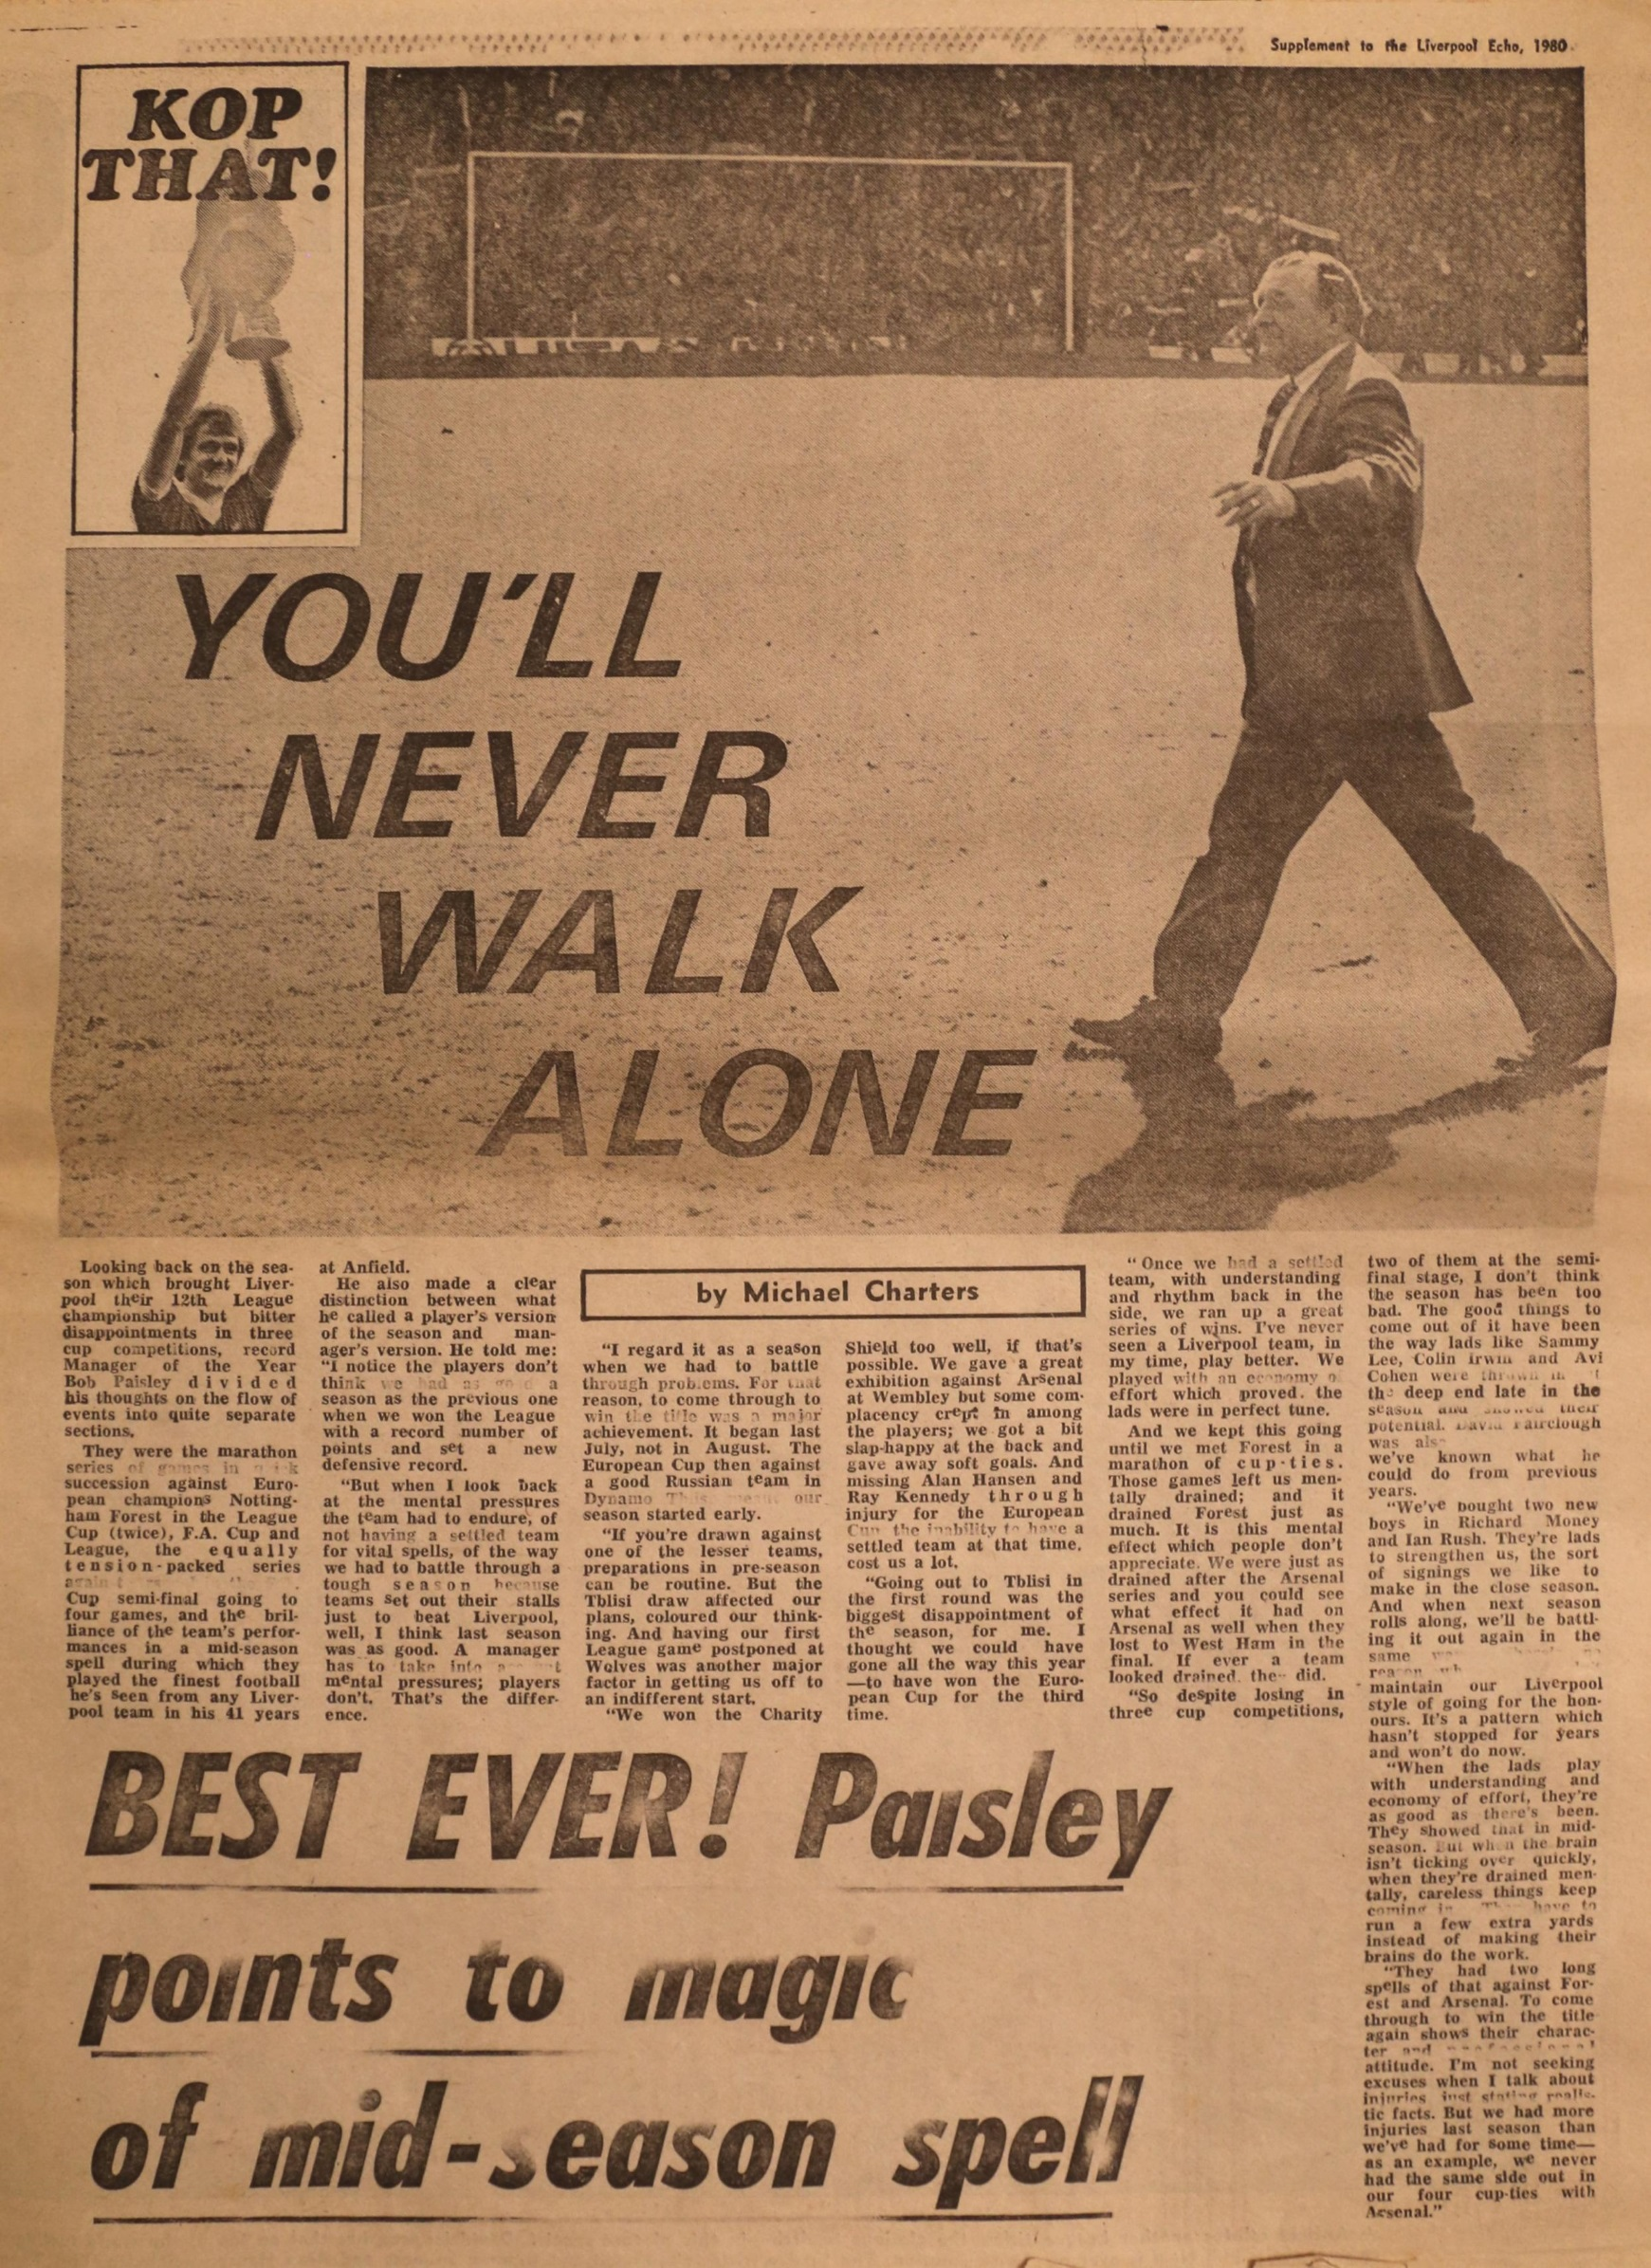 Paisley points to magic of mid-season spell - 1980